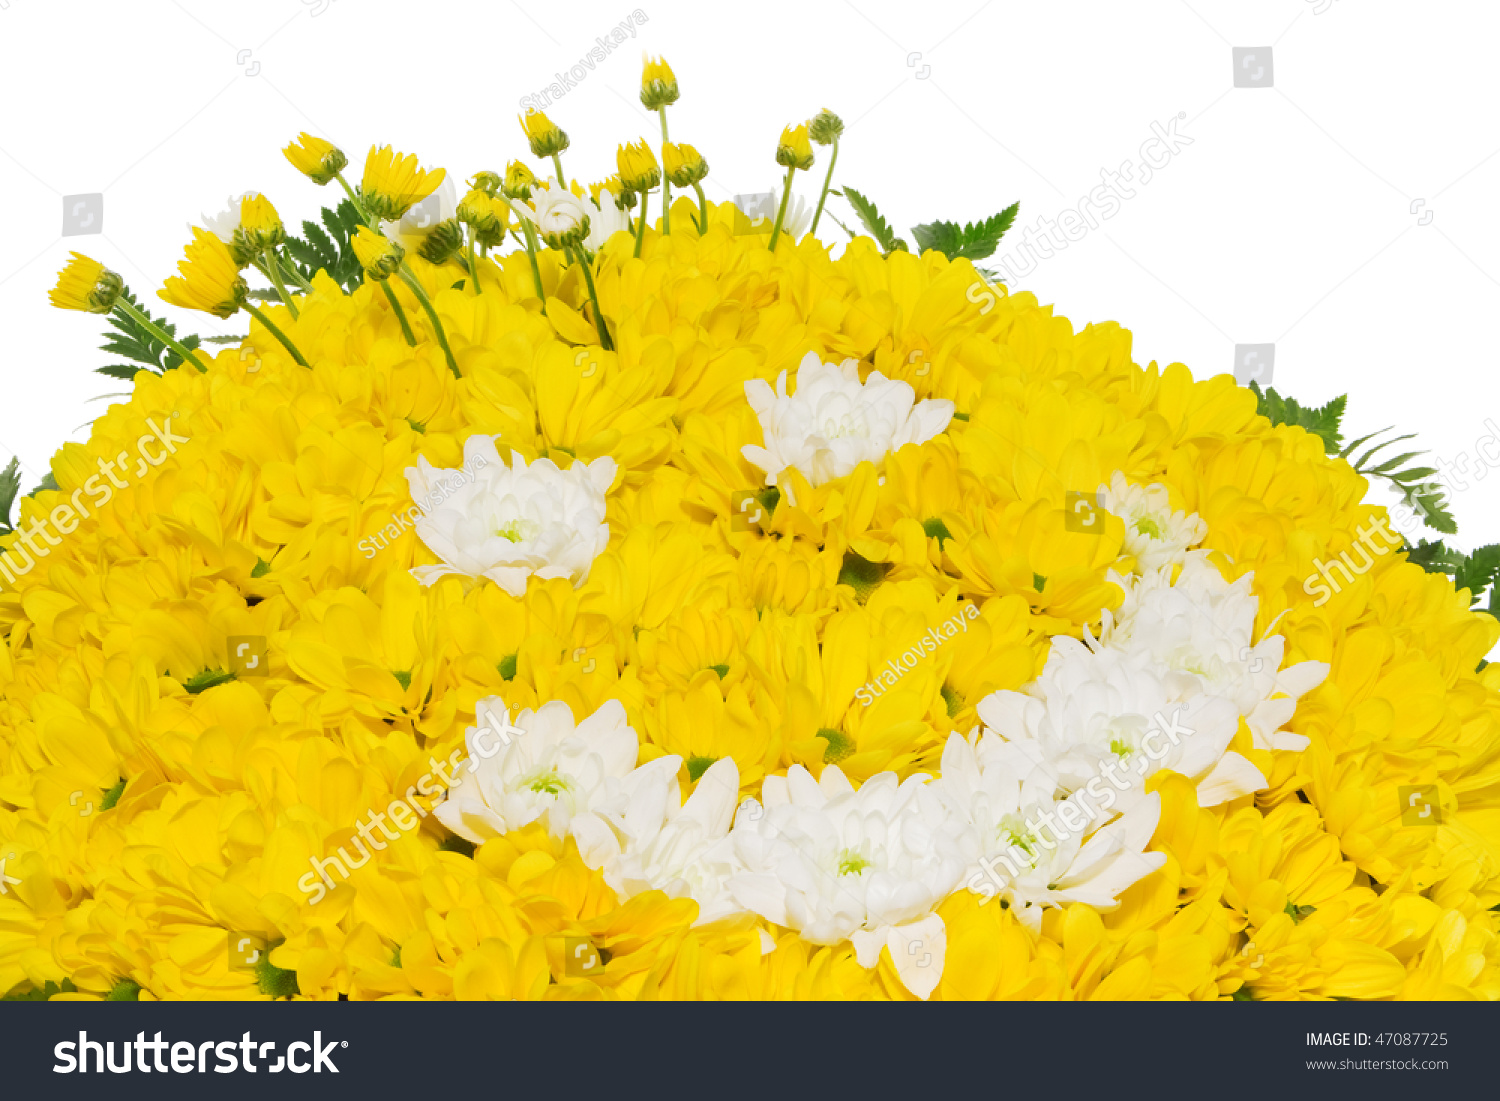 Flower Yellow Smiley Face Stock Photo (Royalty Free) 47087725 ...